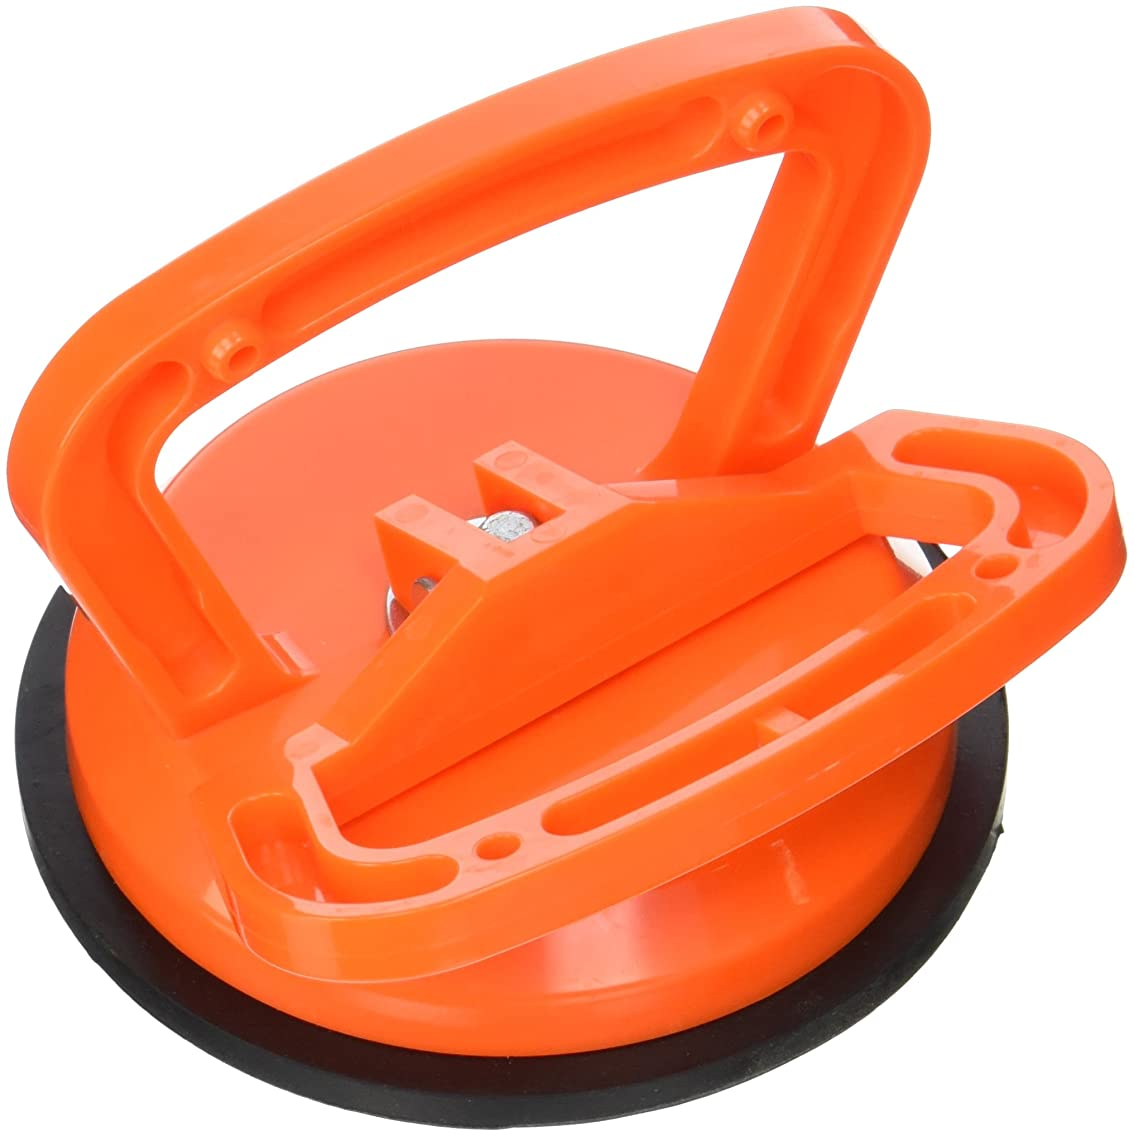 GreatNeck 650 Suction Cup, 4-1/2 Inch